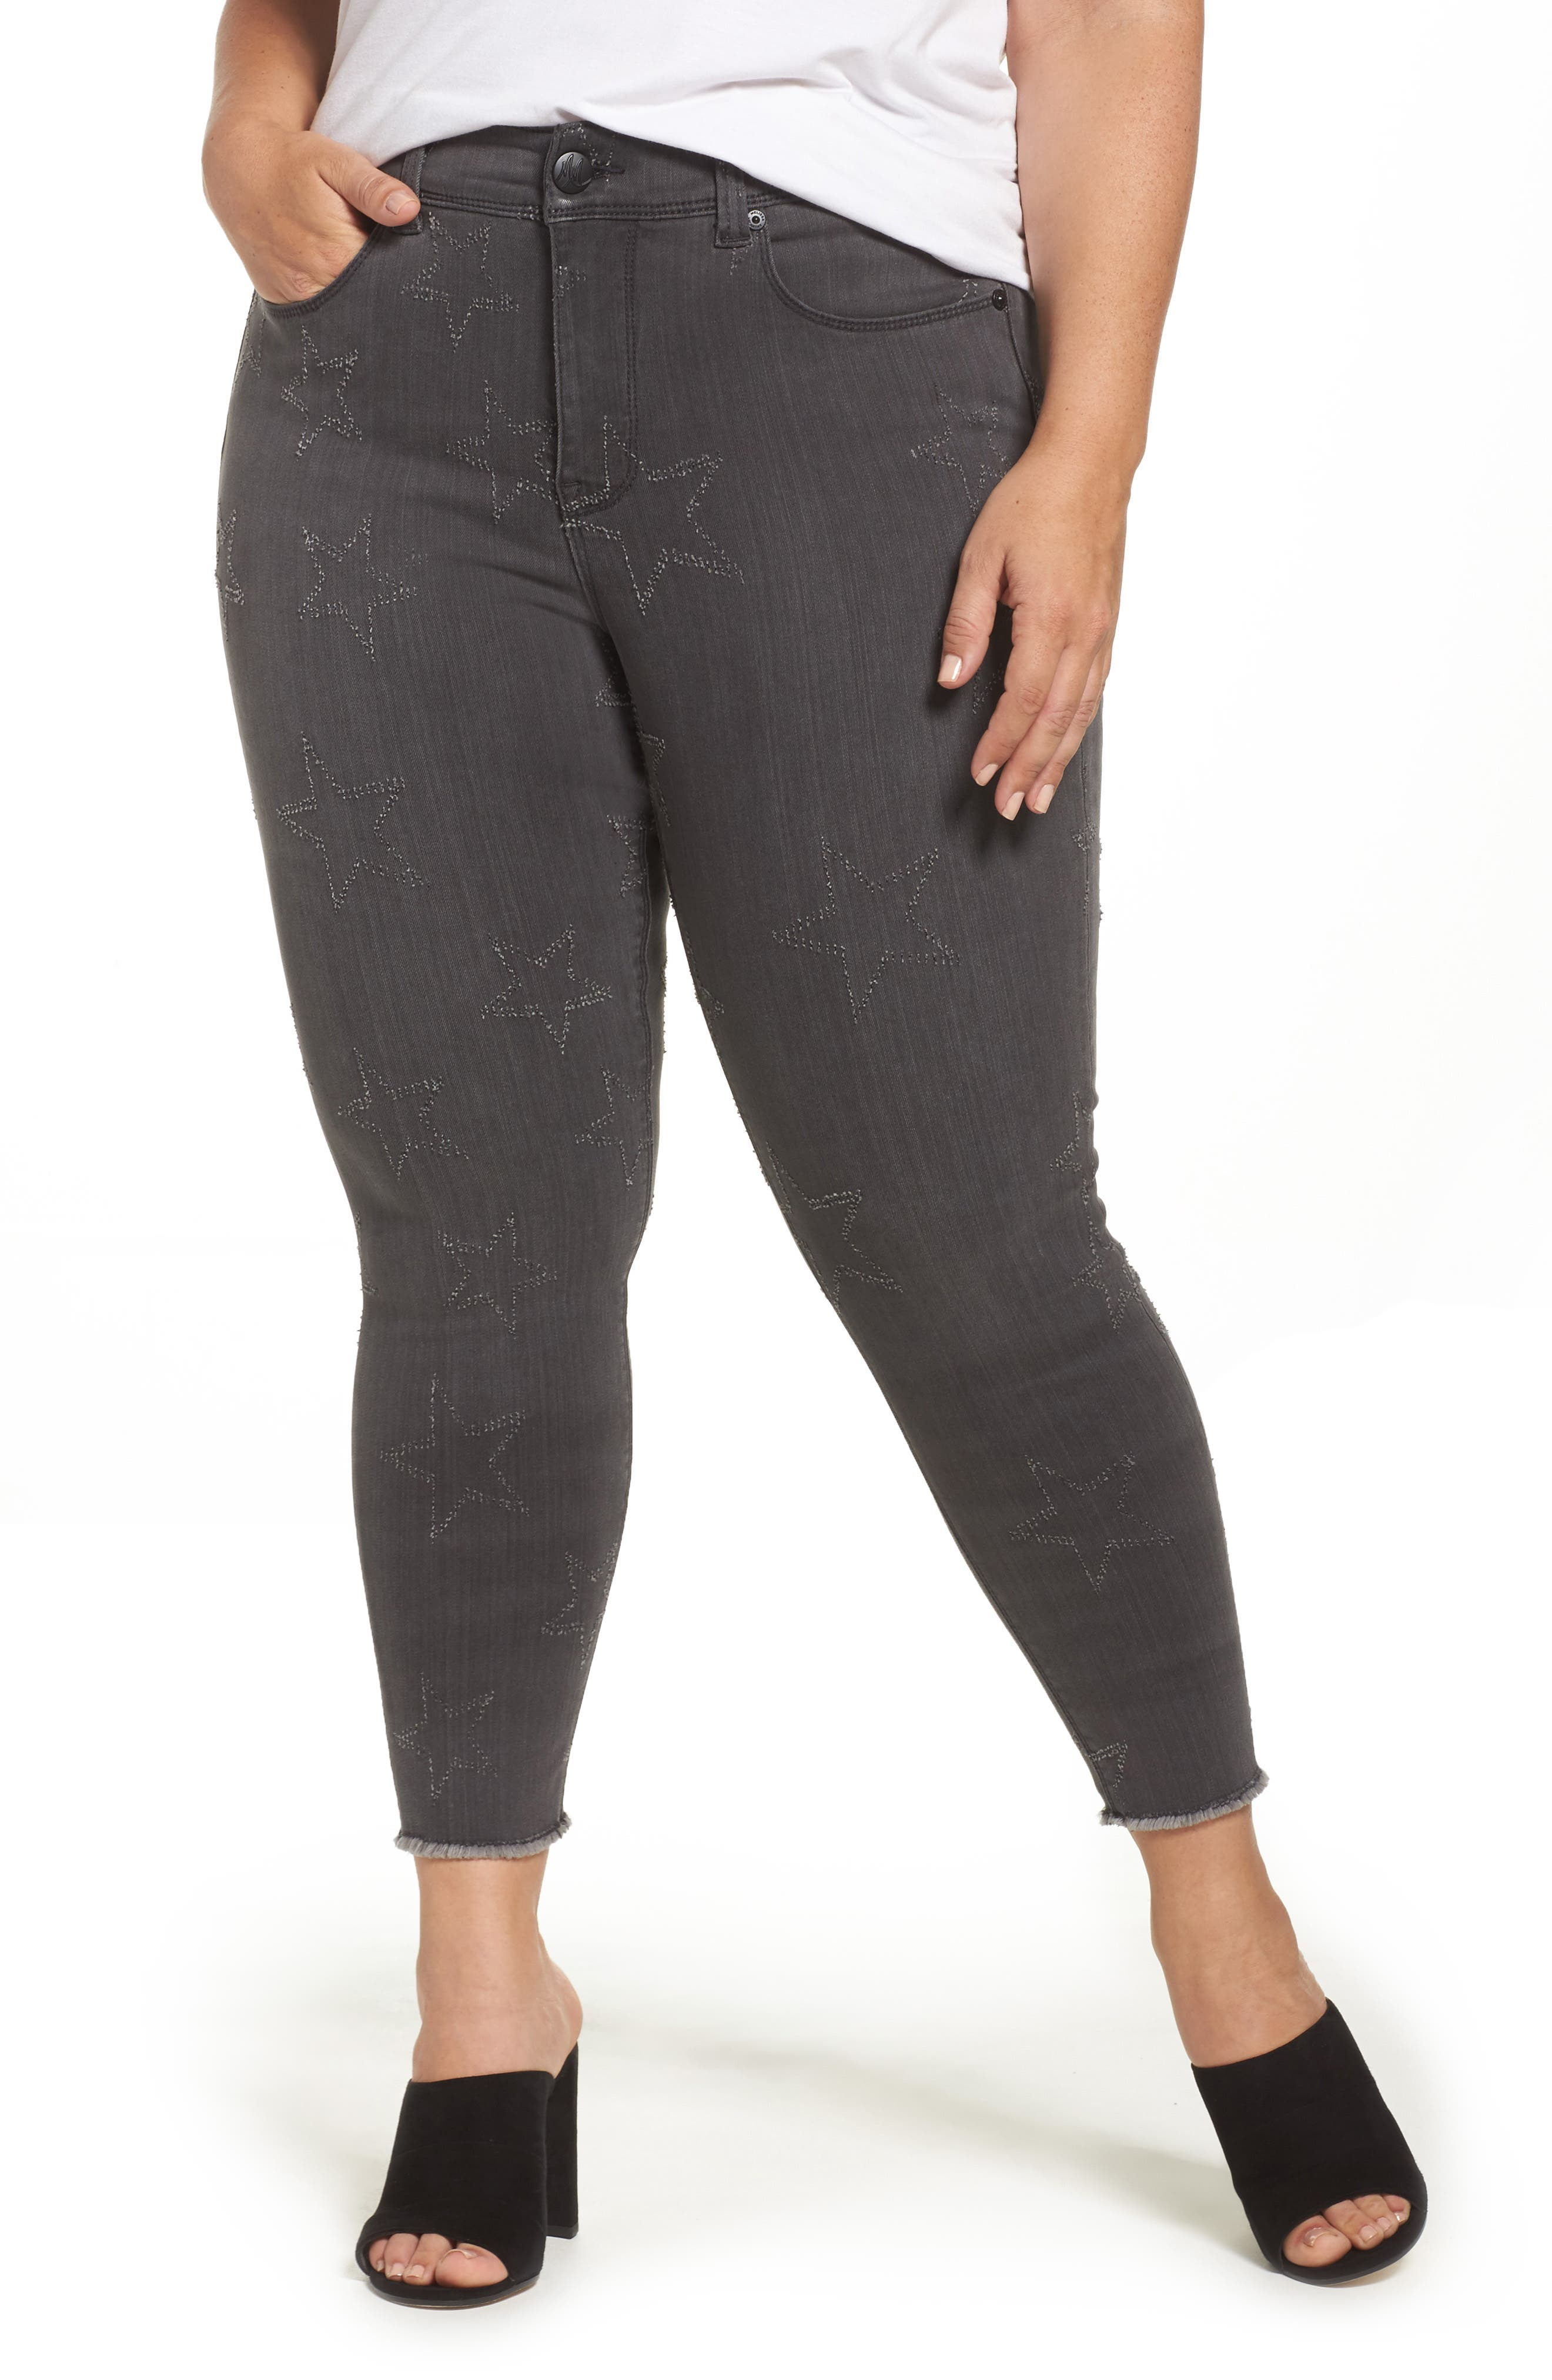 Melissa McCarthy Seven7 Star Embroidered Fray Hem Pencil Jeans (Siouxsie) (Plus Size)